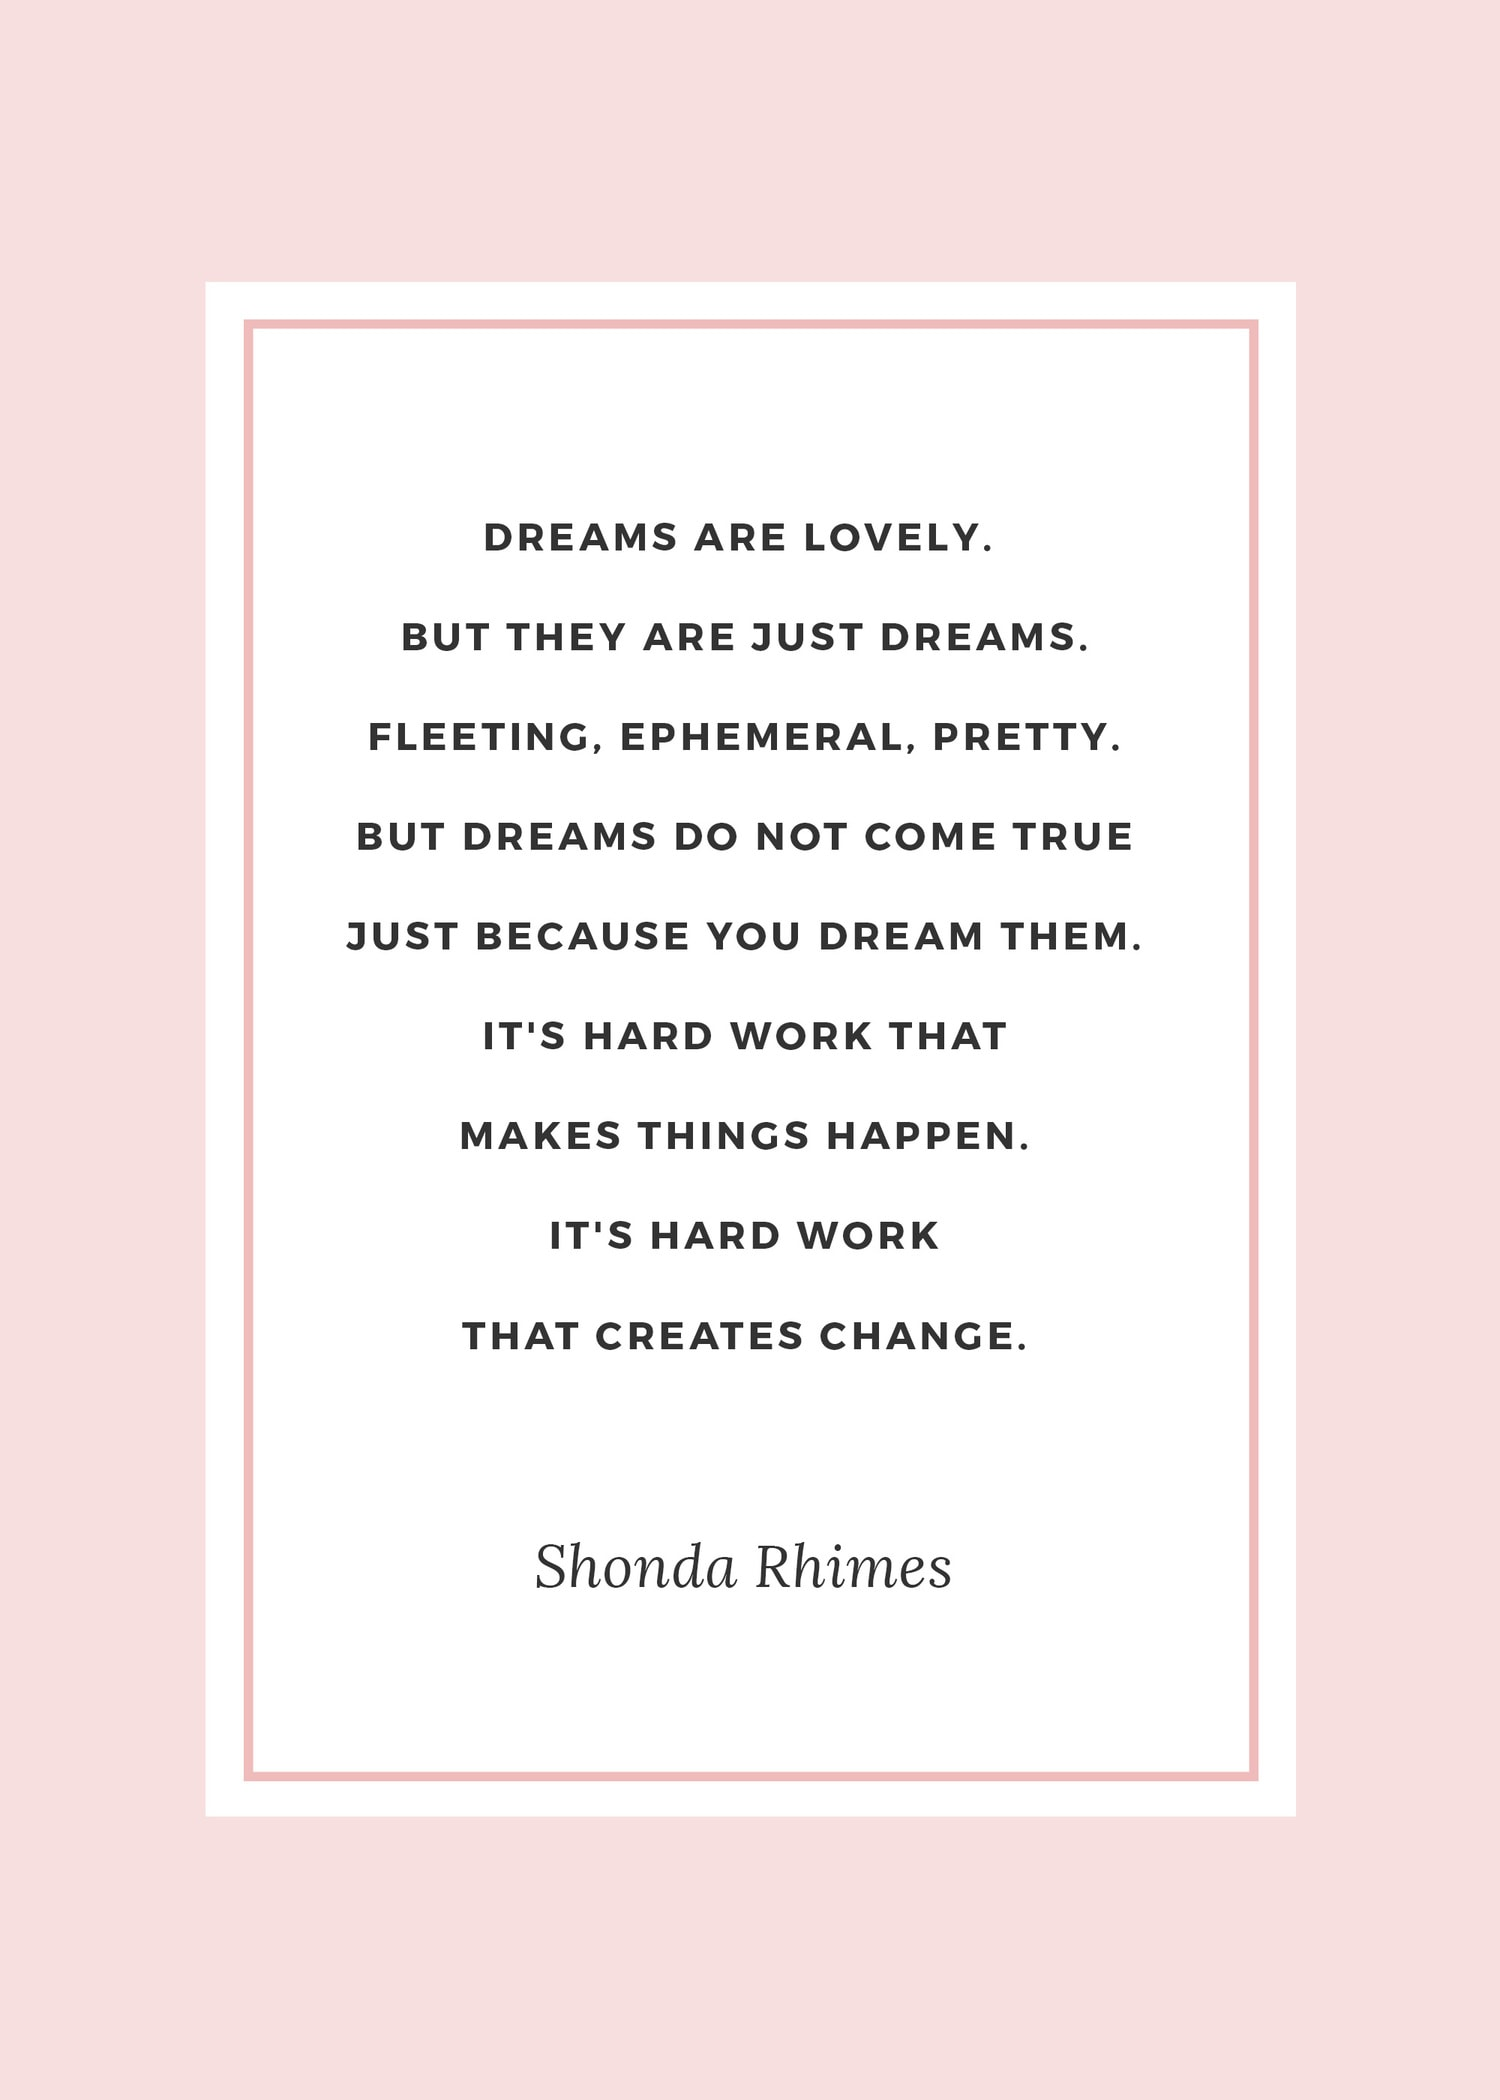 """The best Shonda Rhimes quotes   """"Dreams are lovely. But they are just dreams. Fleeting, ephemeral, pretty. But dreams do not come true just because you dream them. It's hard work that makes things happen. It's hard work that creates change."""" 2014 Dartmouth Commencement speech"""